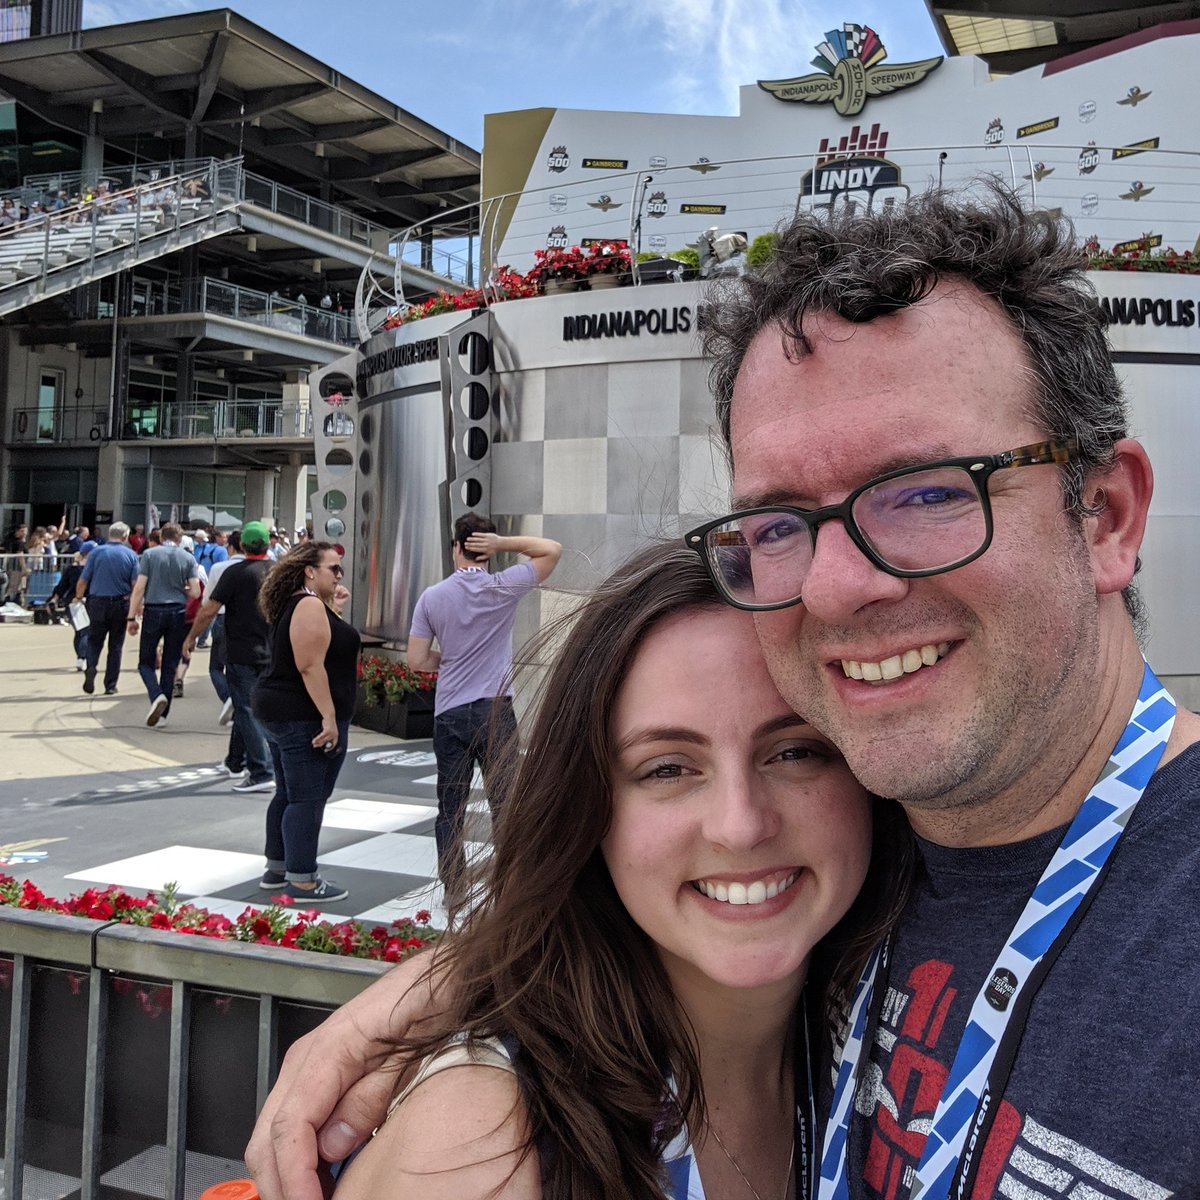 Checking out victory lane with @GoSmile #ShareASmile #ThisIsMay #Indy500